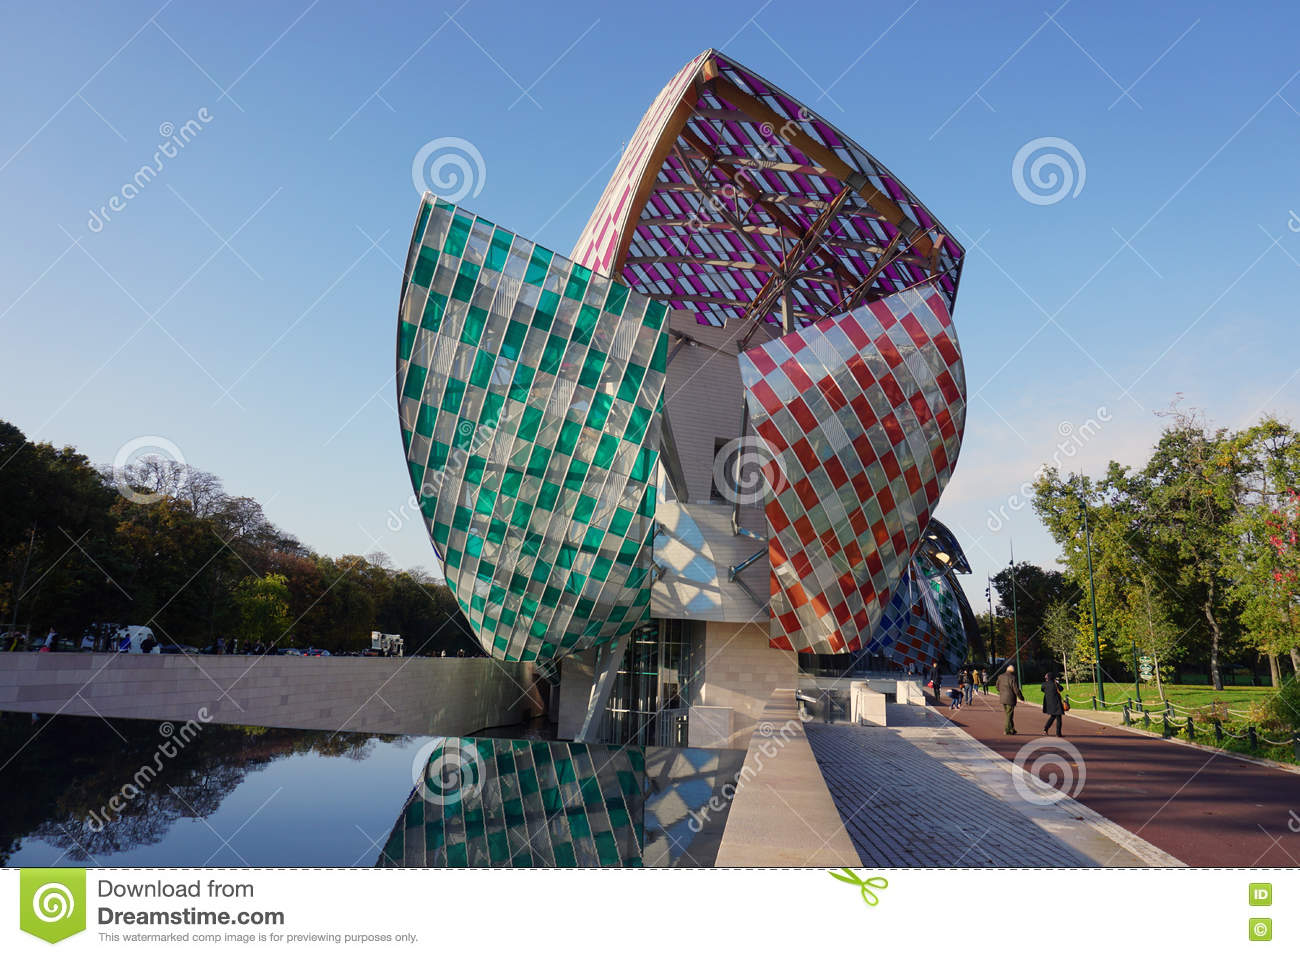 3c7859281b450 Das Museum Fondation Louis Vuitton In Paris Redaktionelles Stockbild ...